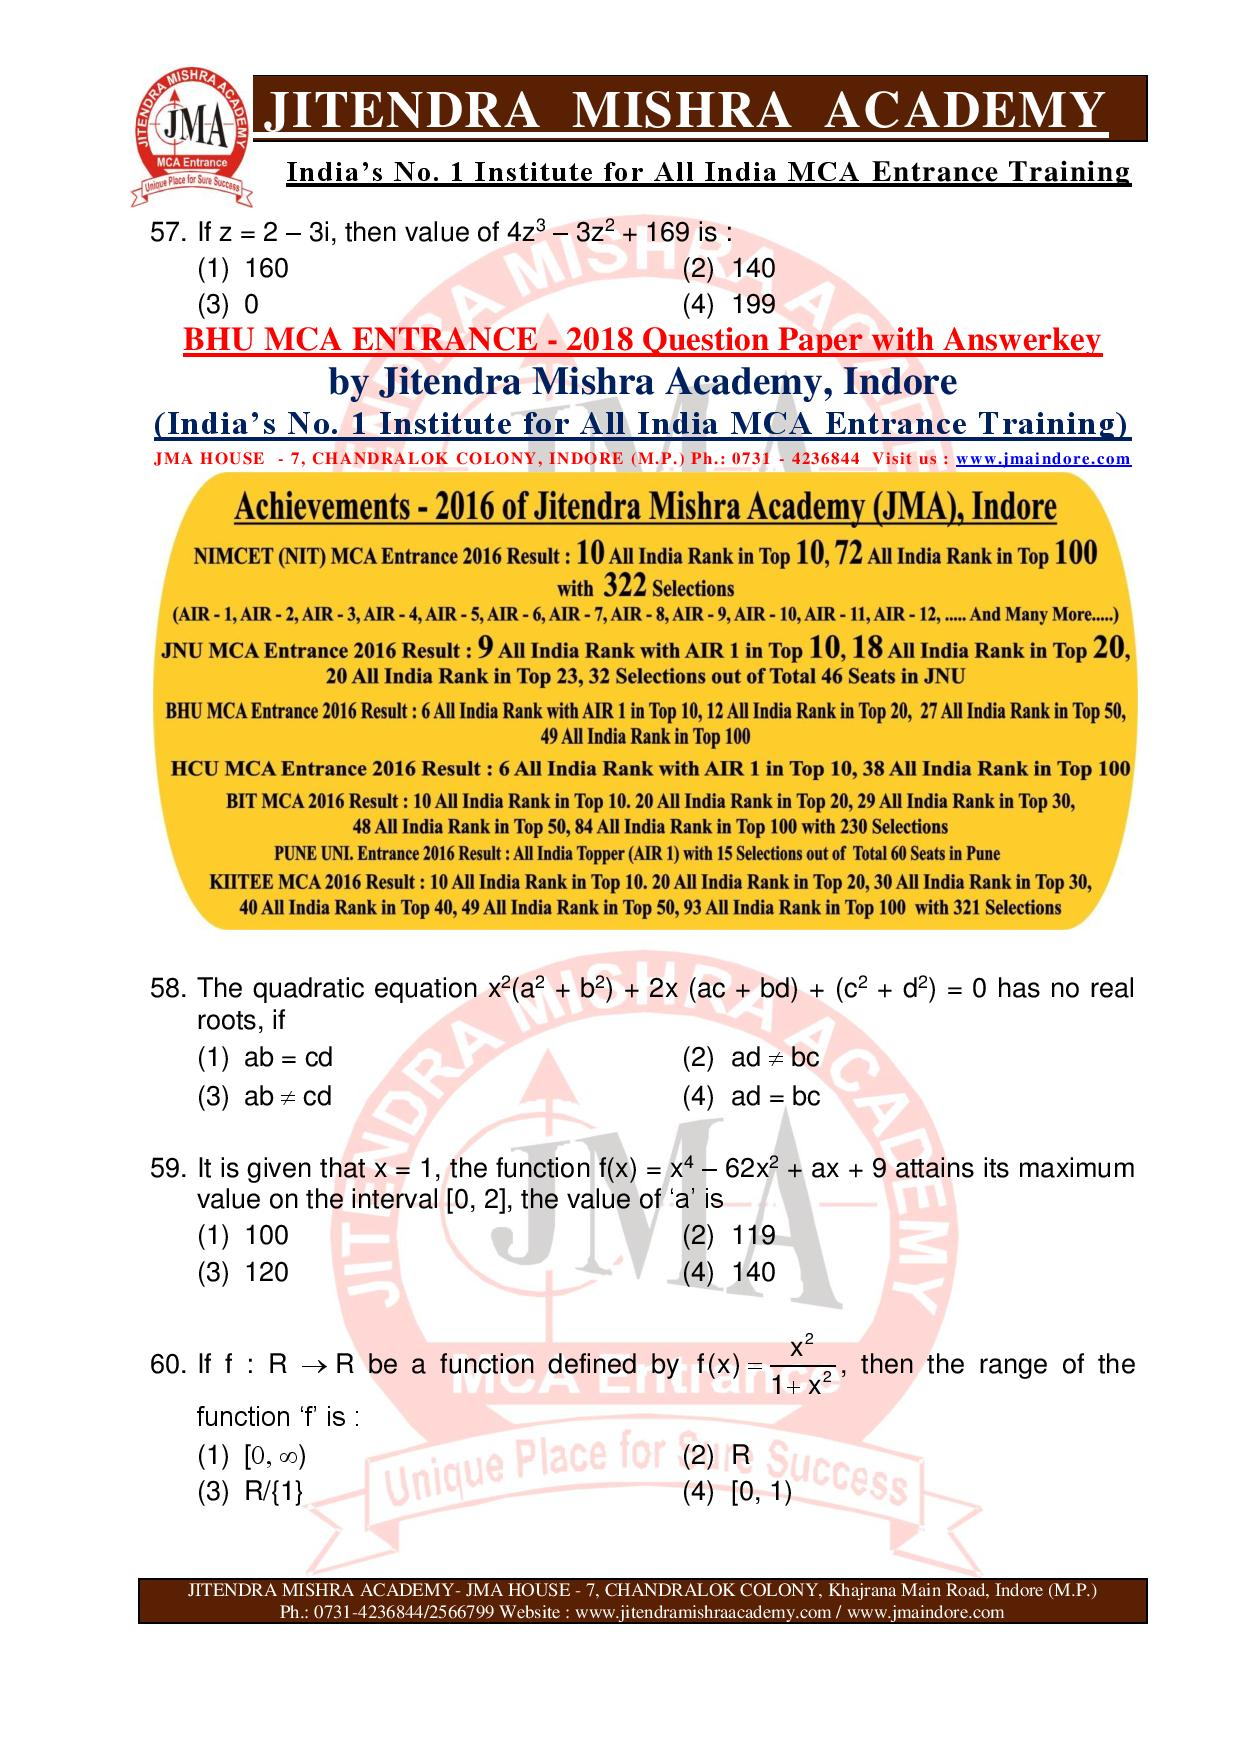 BHU MCA 2018 QUESTION PAPER12-page-018